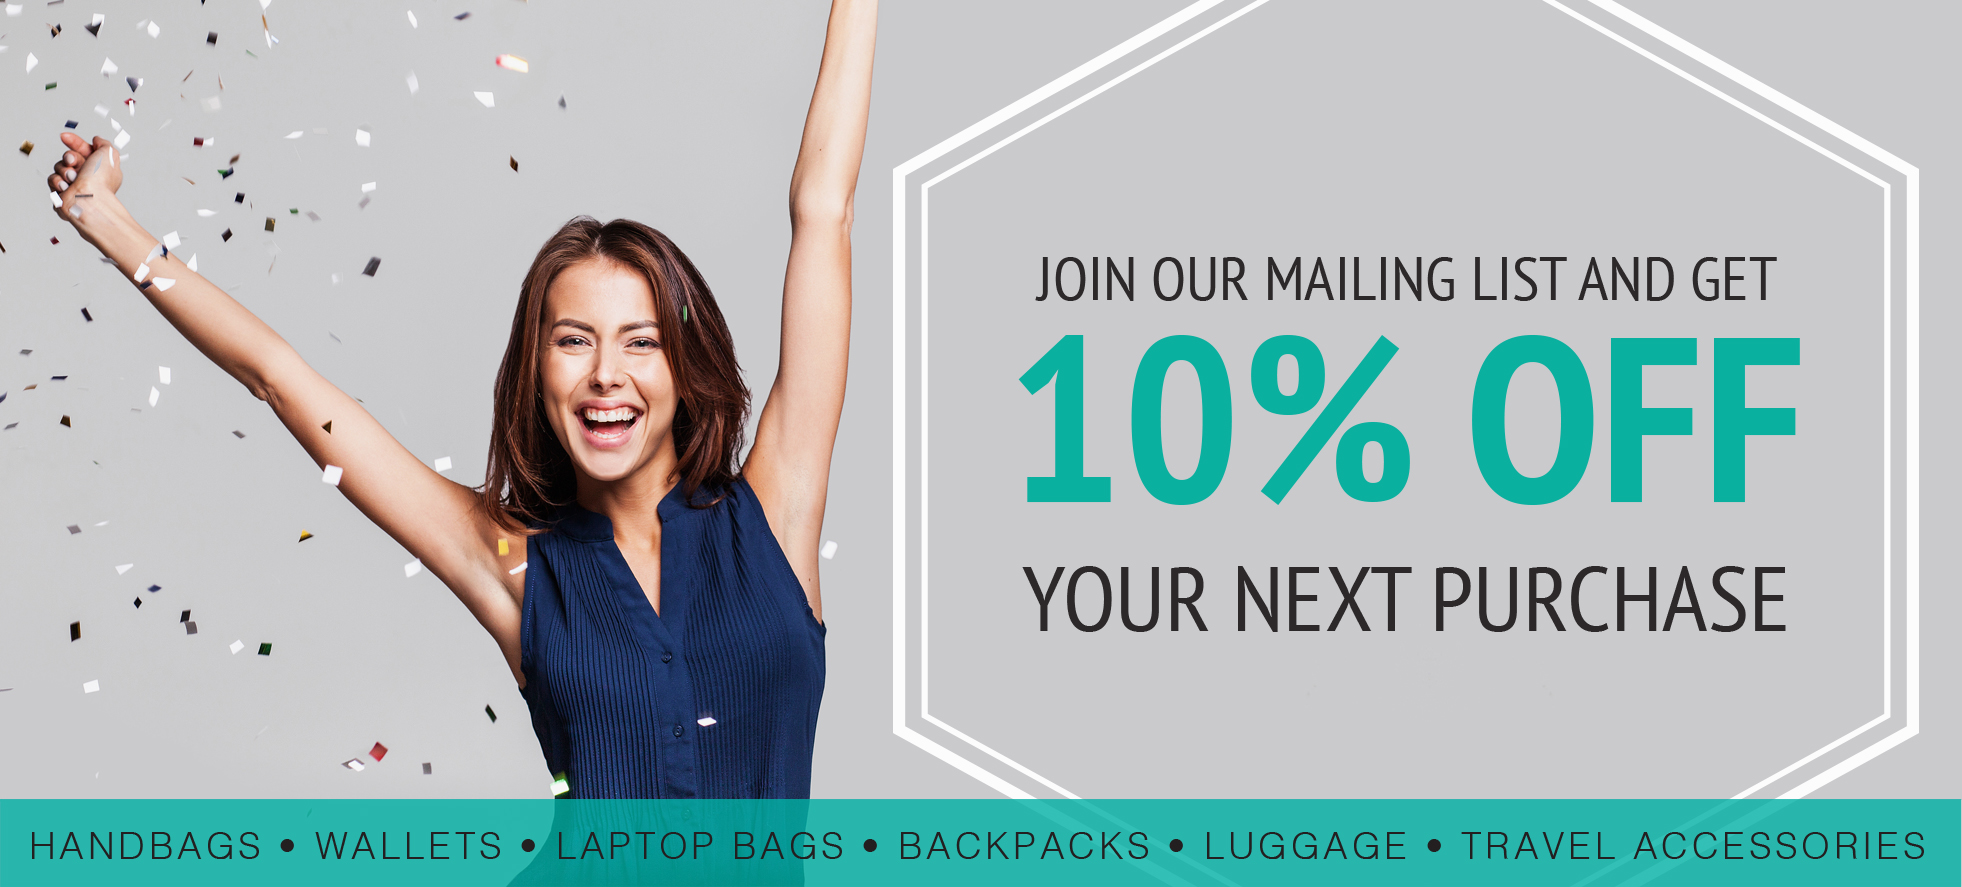 or-00087-18-join-mailing-list-get-10off-banner.jpg